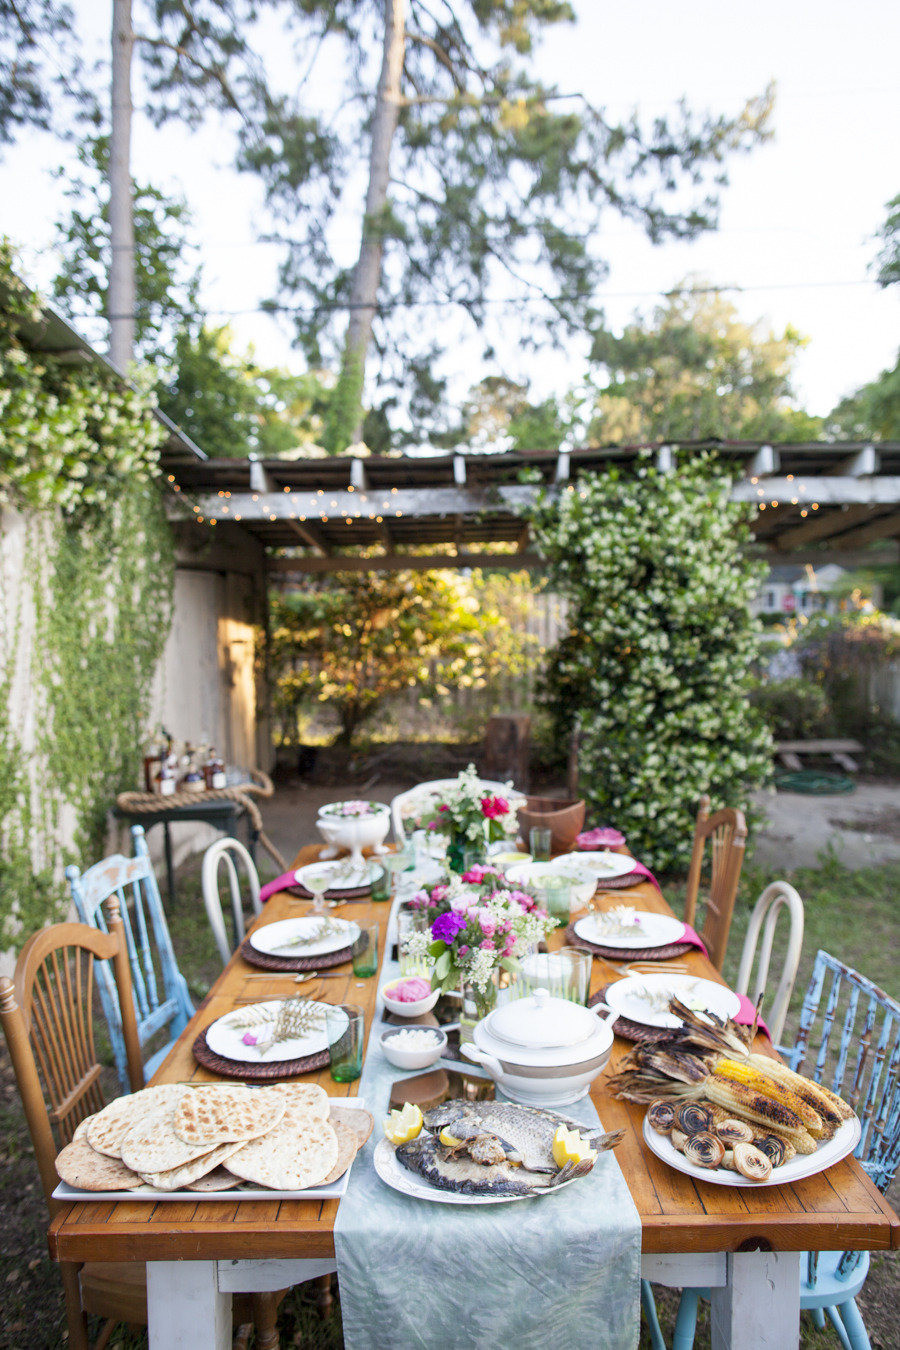 Ideas For Backyard Party  50 Outdoor Party Ideas You Should Try Out This Summer